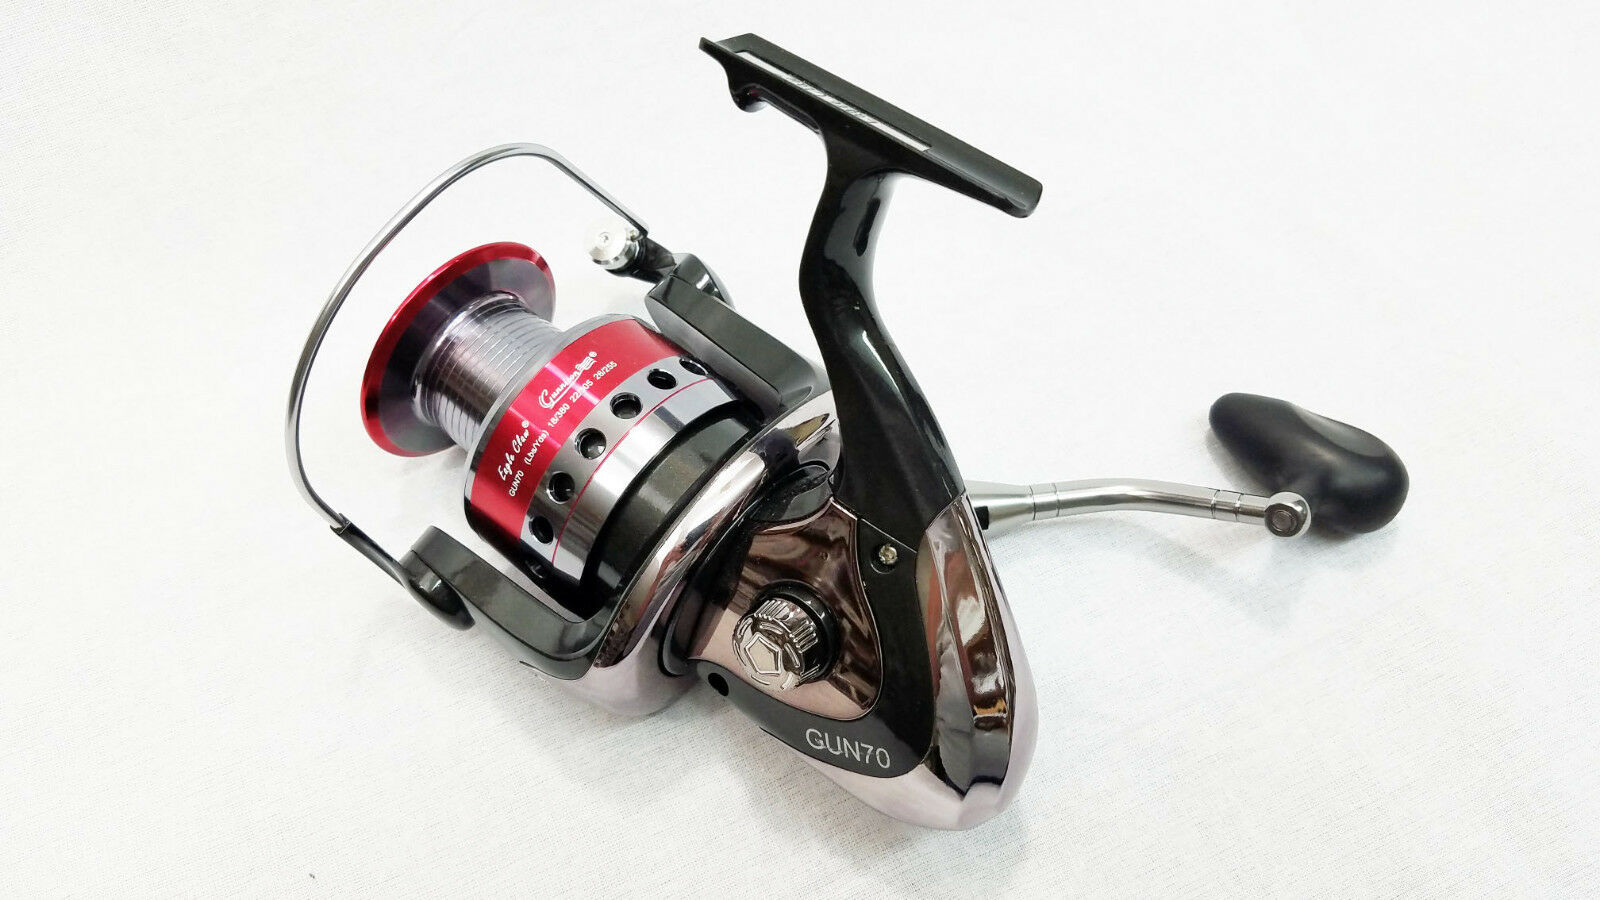 NEW MODEL EAGLE CLAW GUNNISON CATFISH SPINNING REEL GUN-70 8BB CRAPPIE POLE ROD)